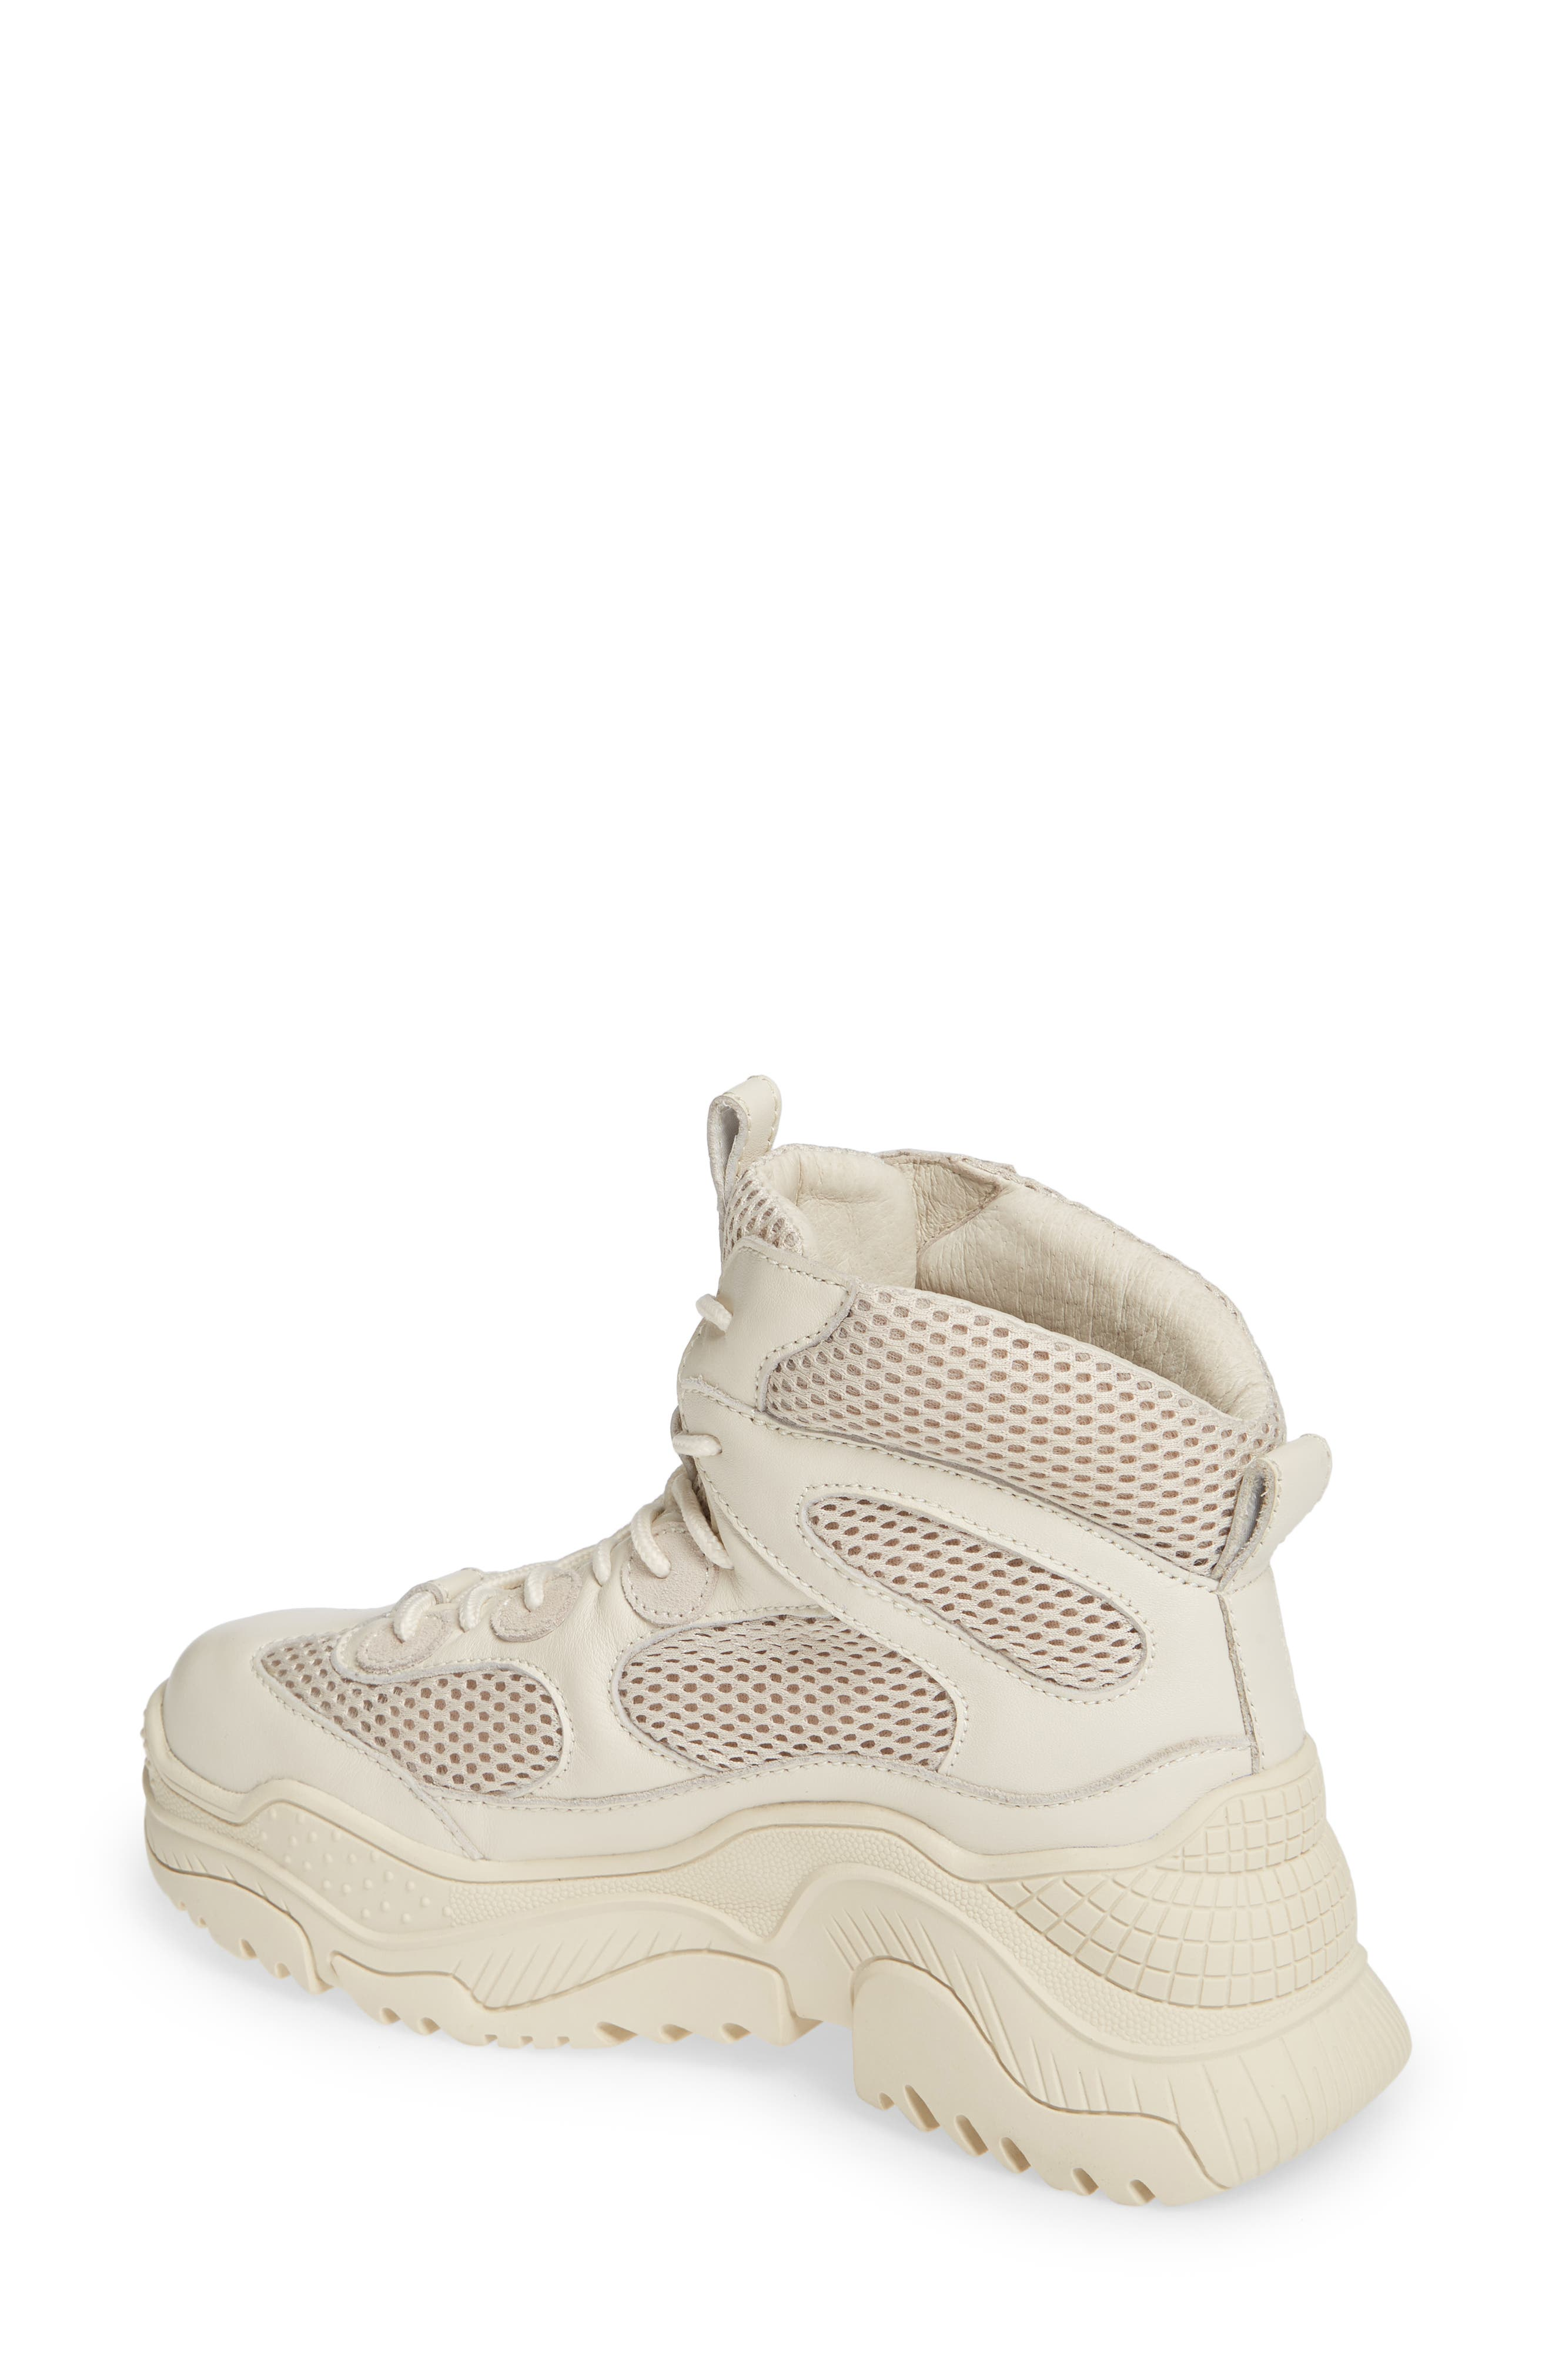 Pyro Wedge Sneaker Boot,                             Alternate thumbnail 2, color,                             OFF WHITE COMBO